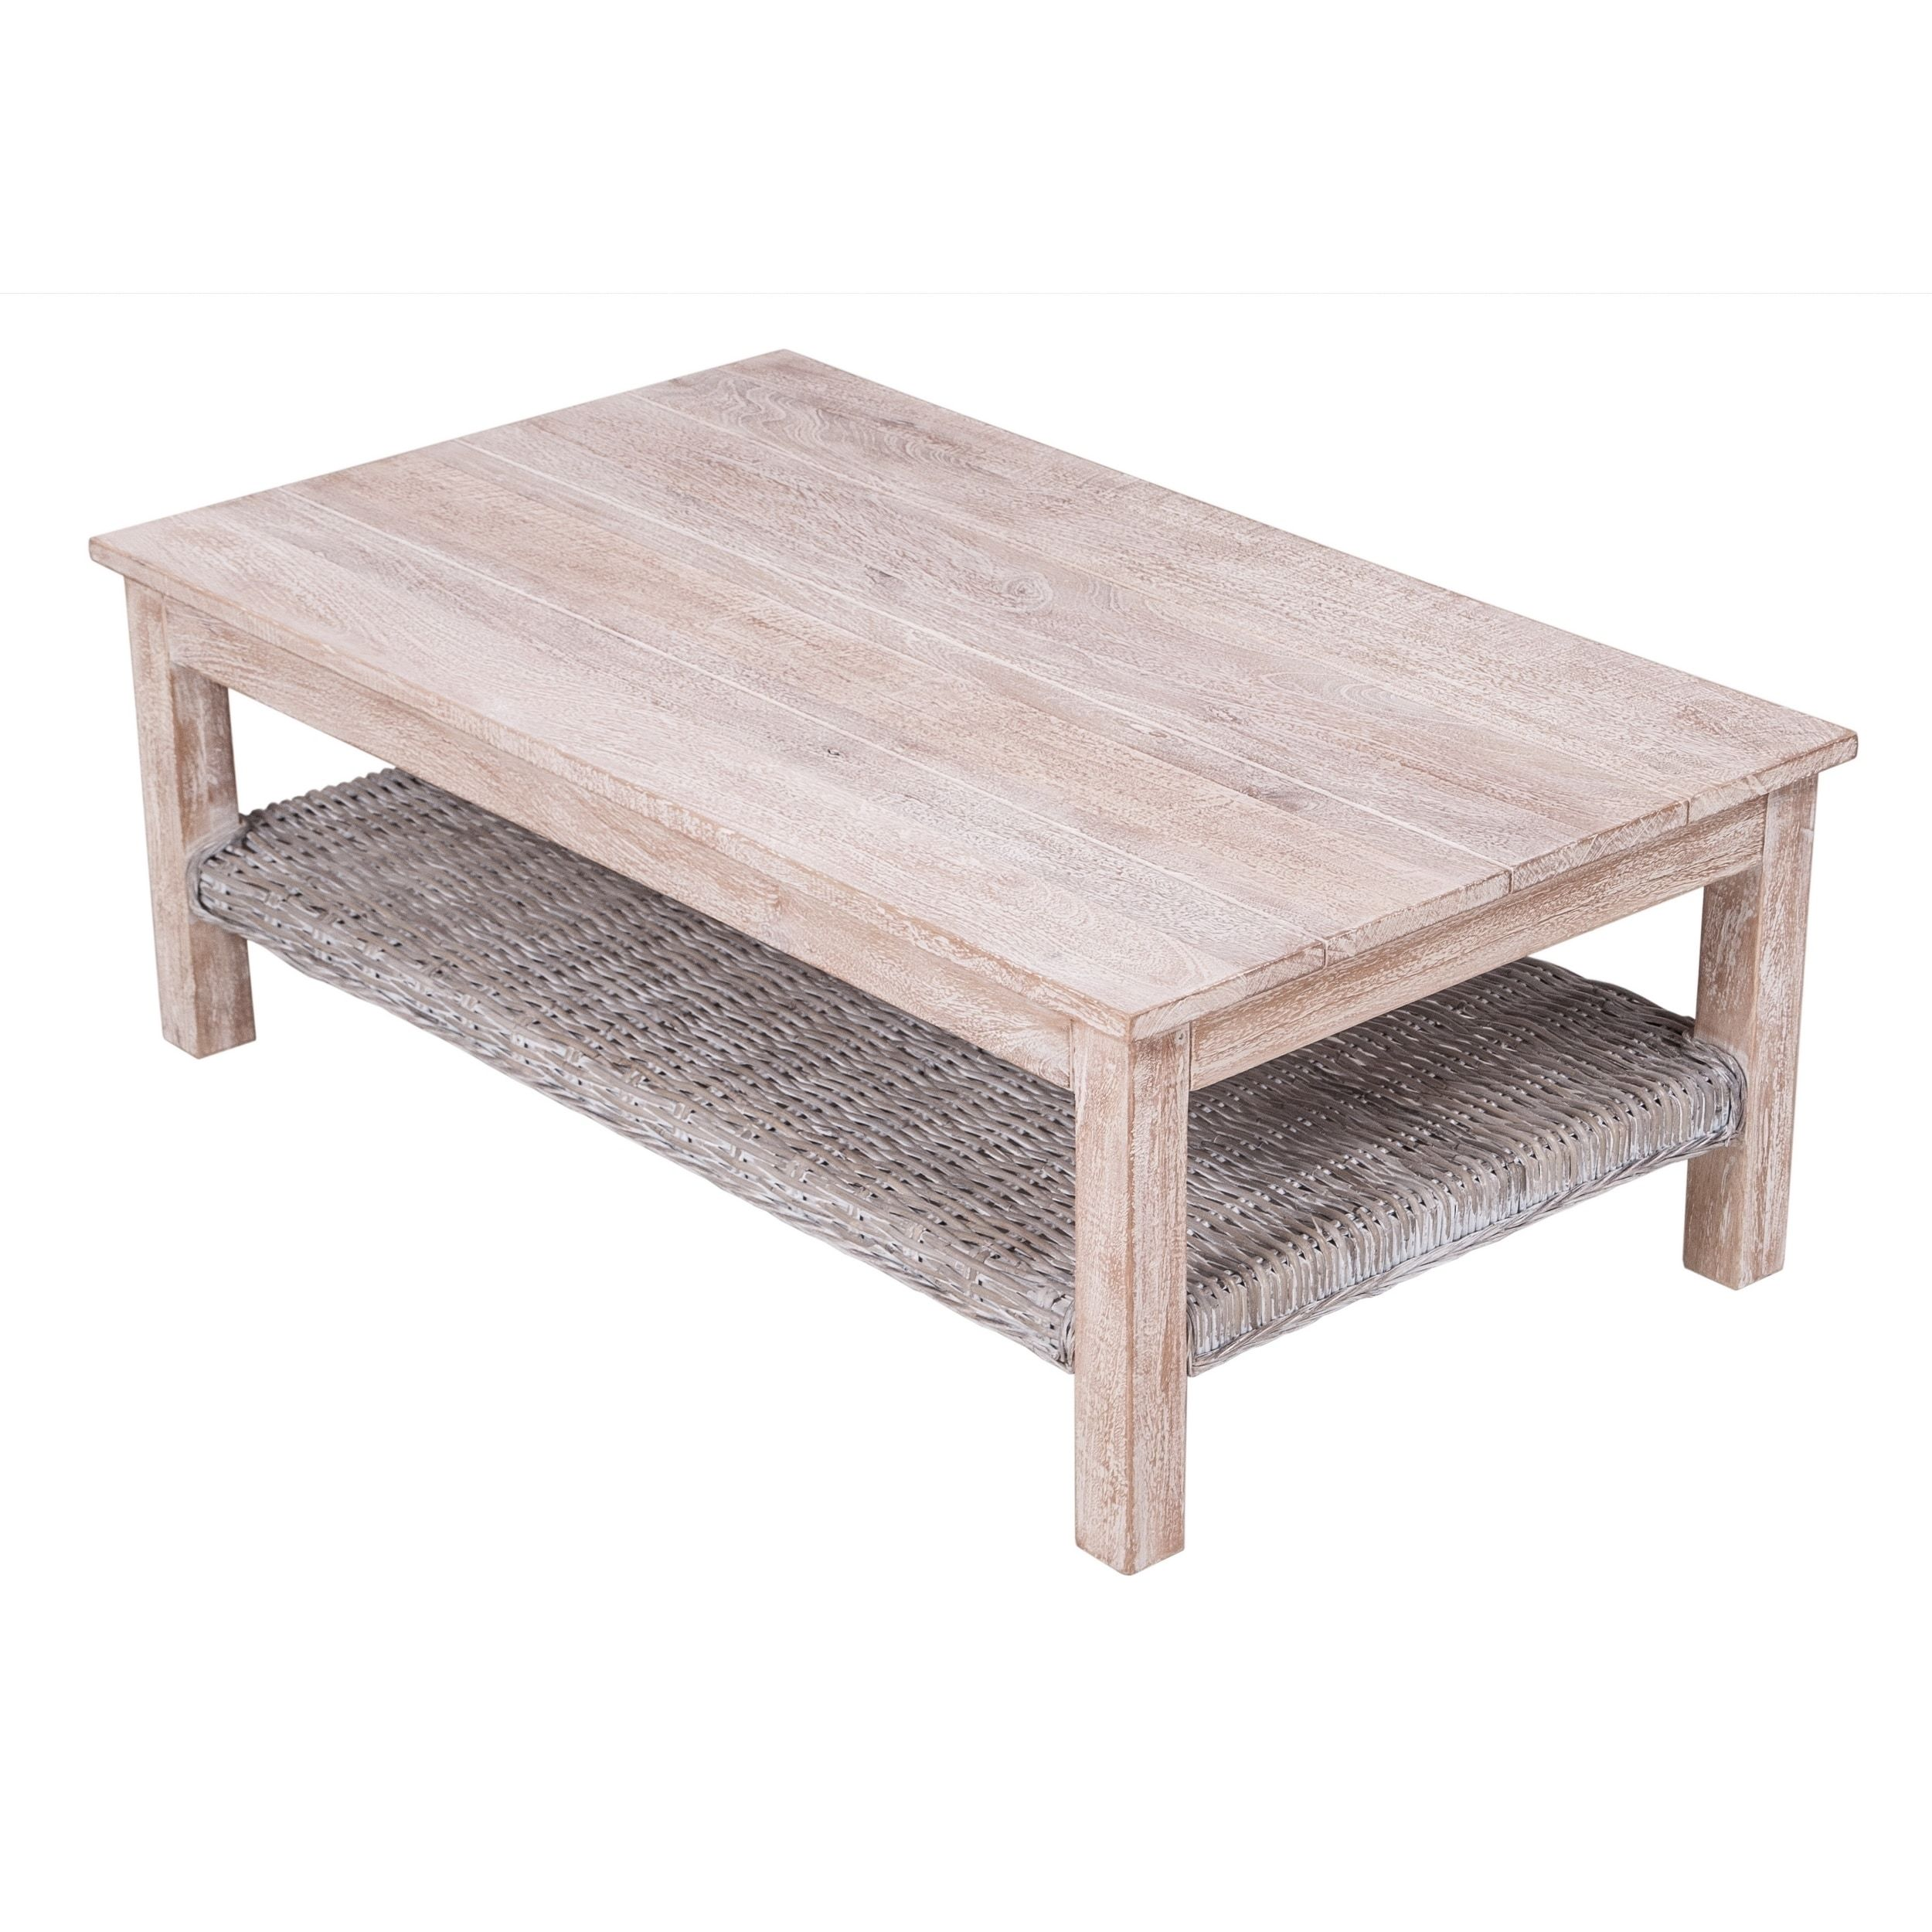 Overstock White Coffee Table.Safavieh Minerva White Coffee Table Free Shipping Today